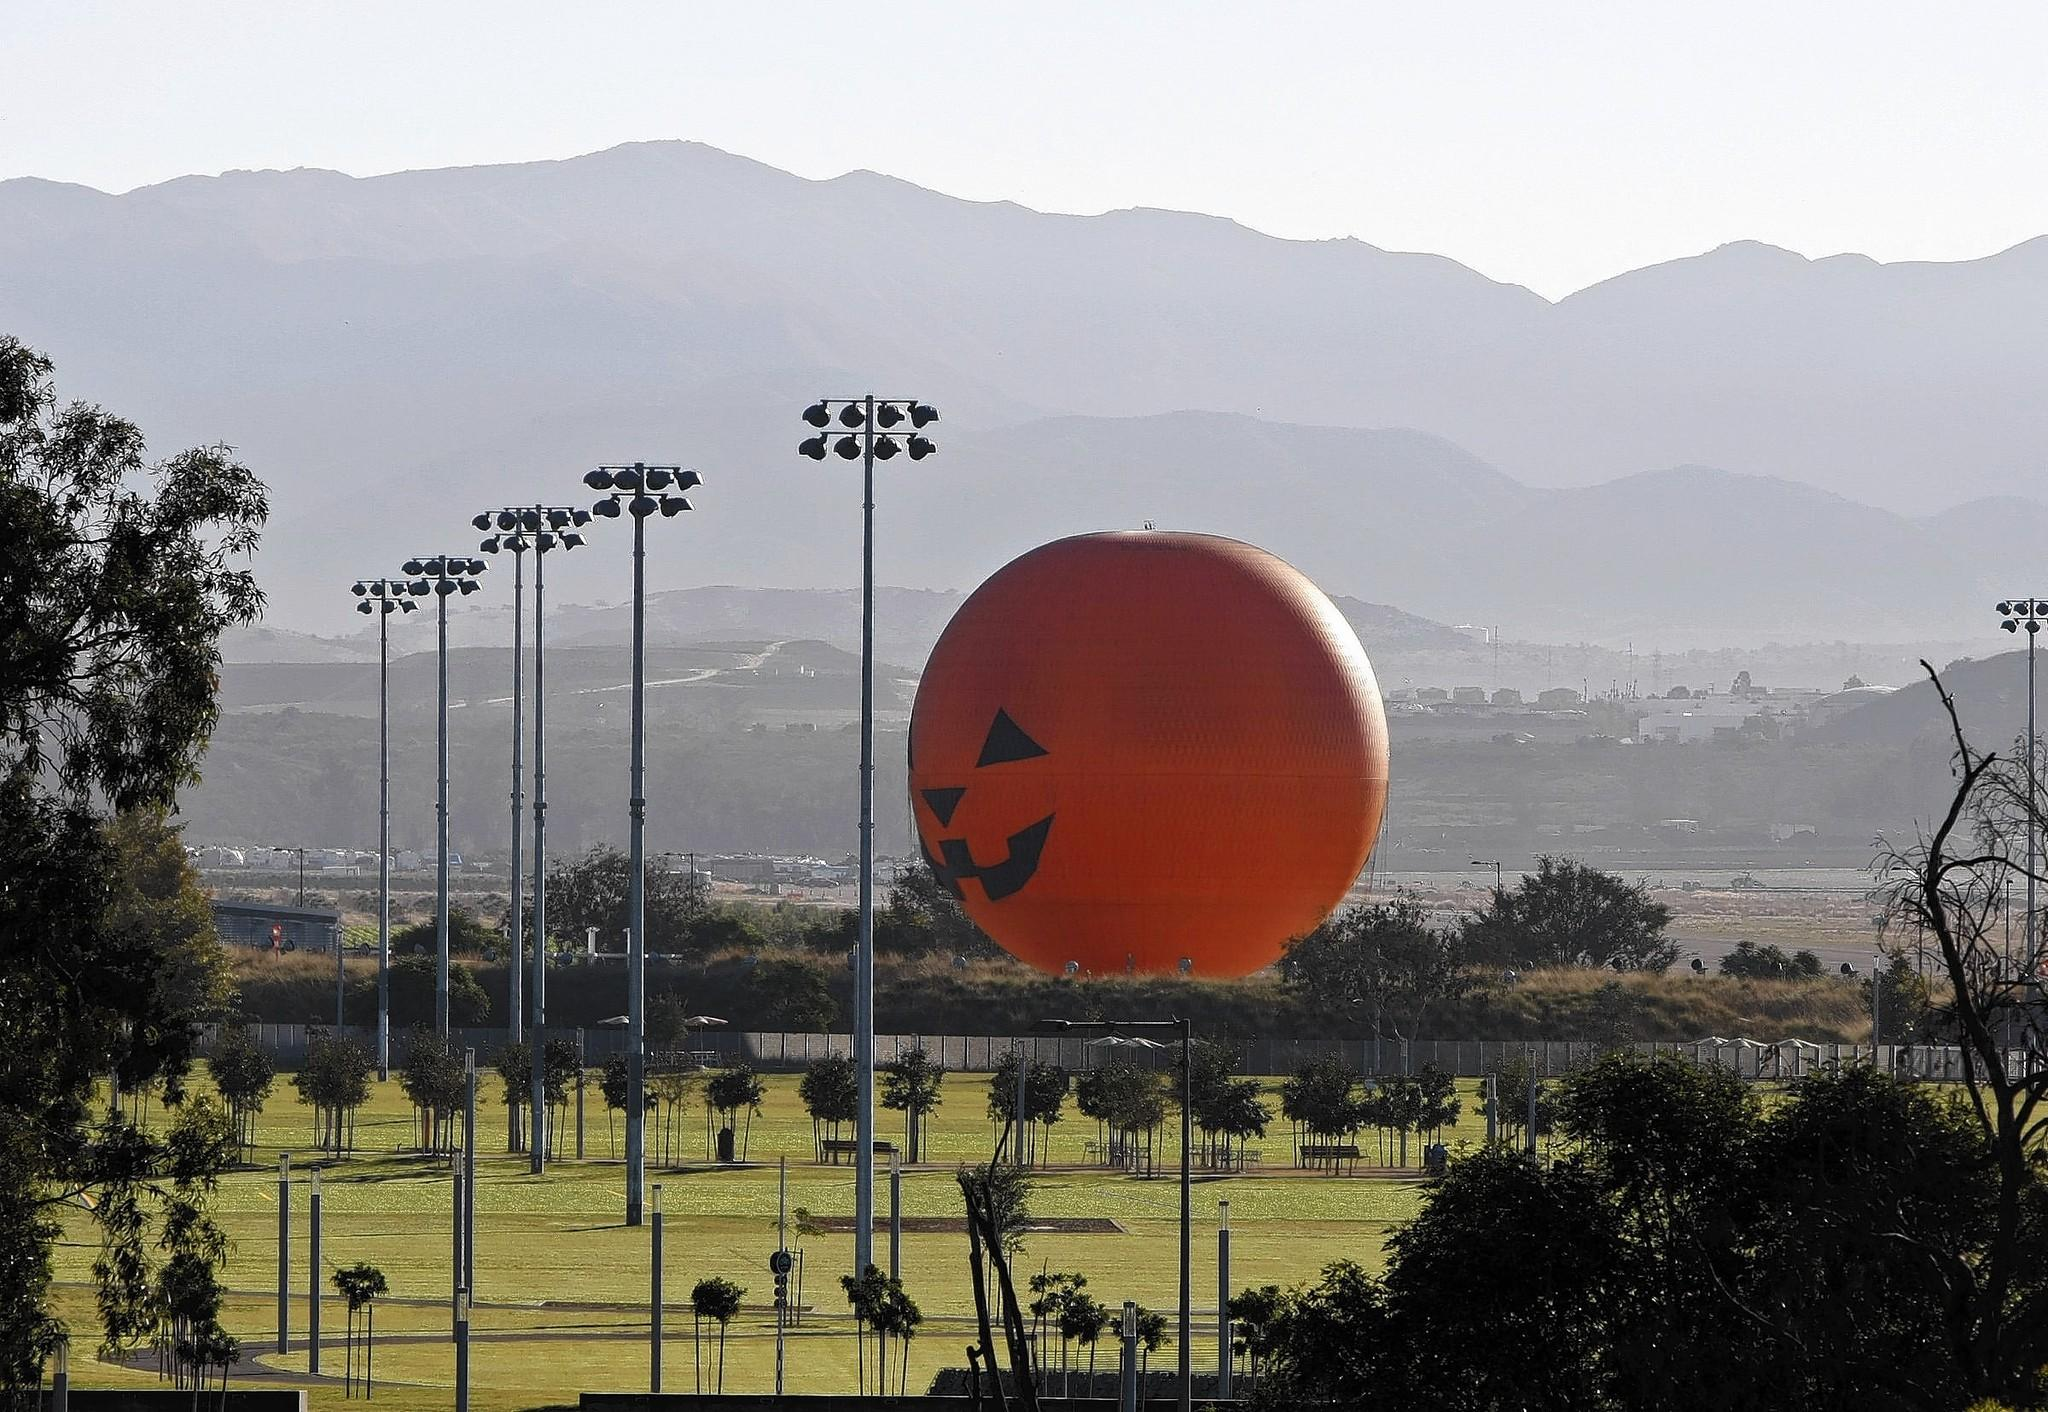 The 118-foot-high Great Park Balloon observation ride sits near athletic fields at the Great Park in Irvine. The balloon has been the centerpiece of the struggling park.